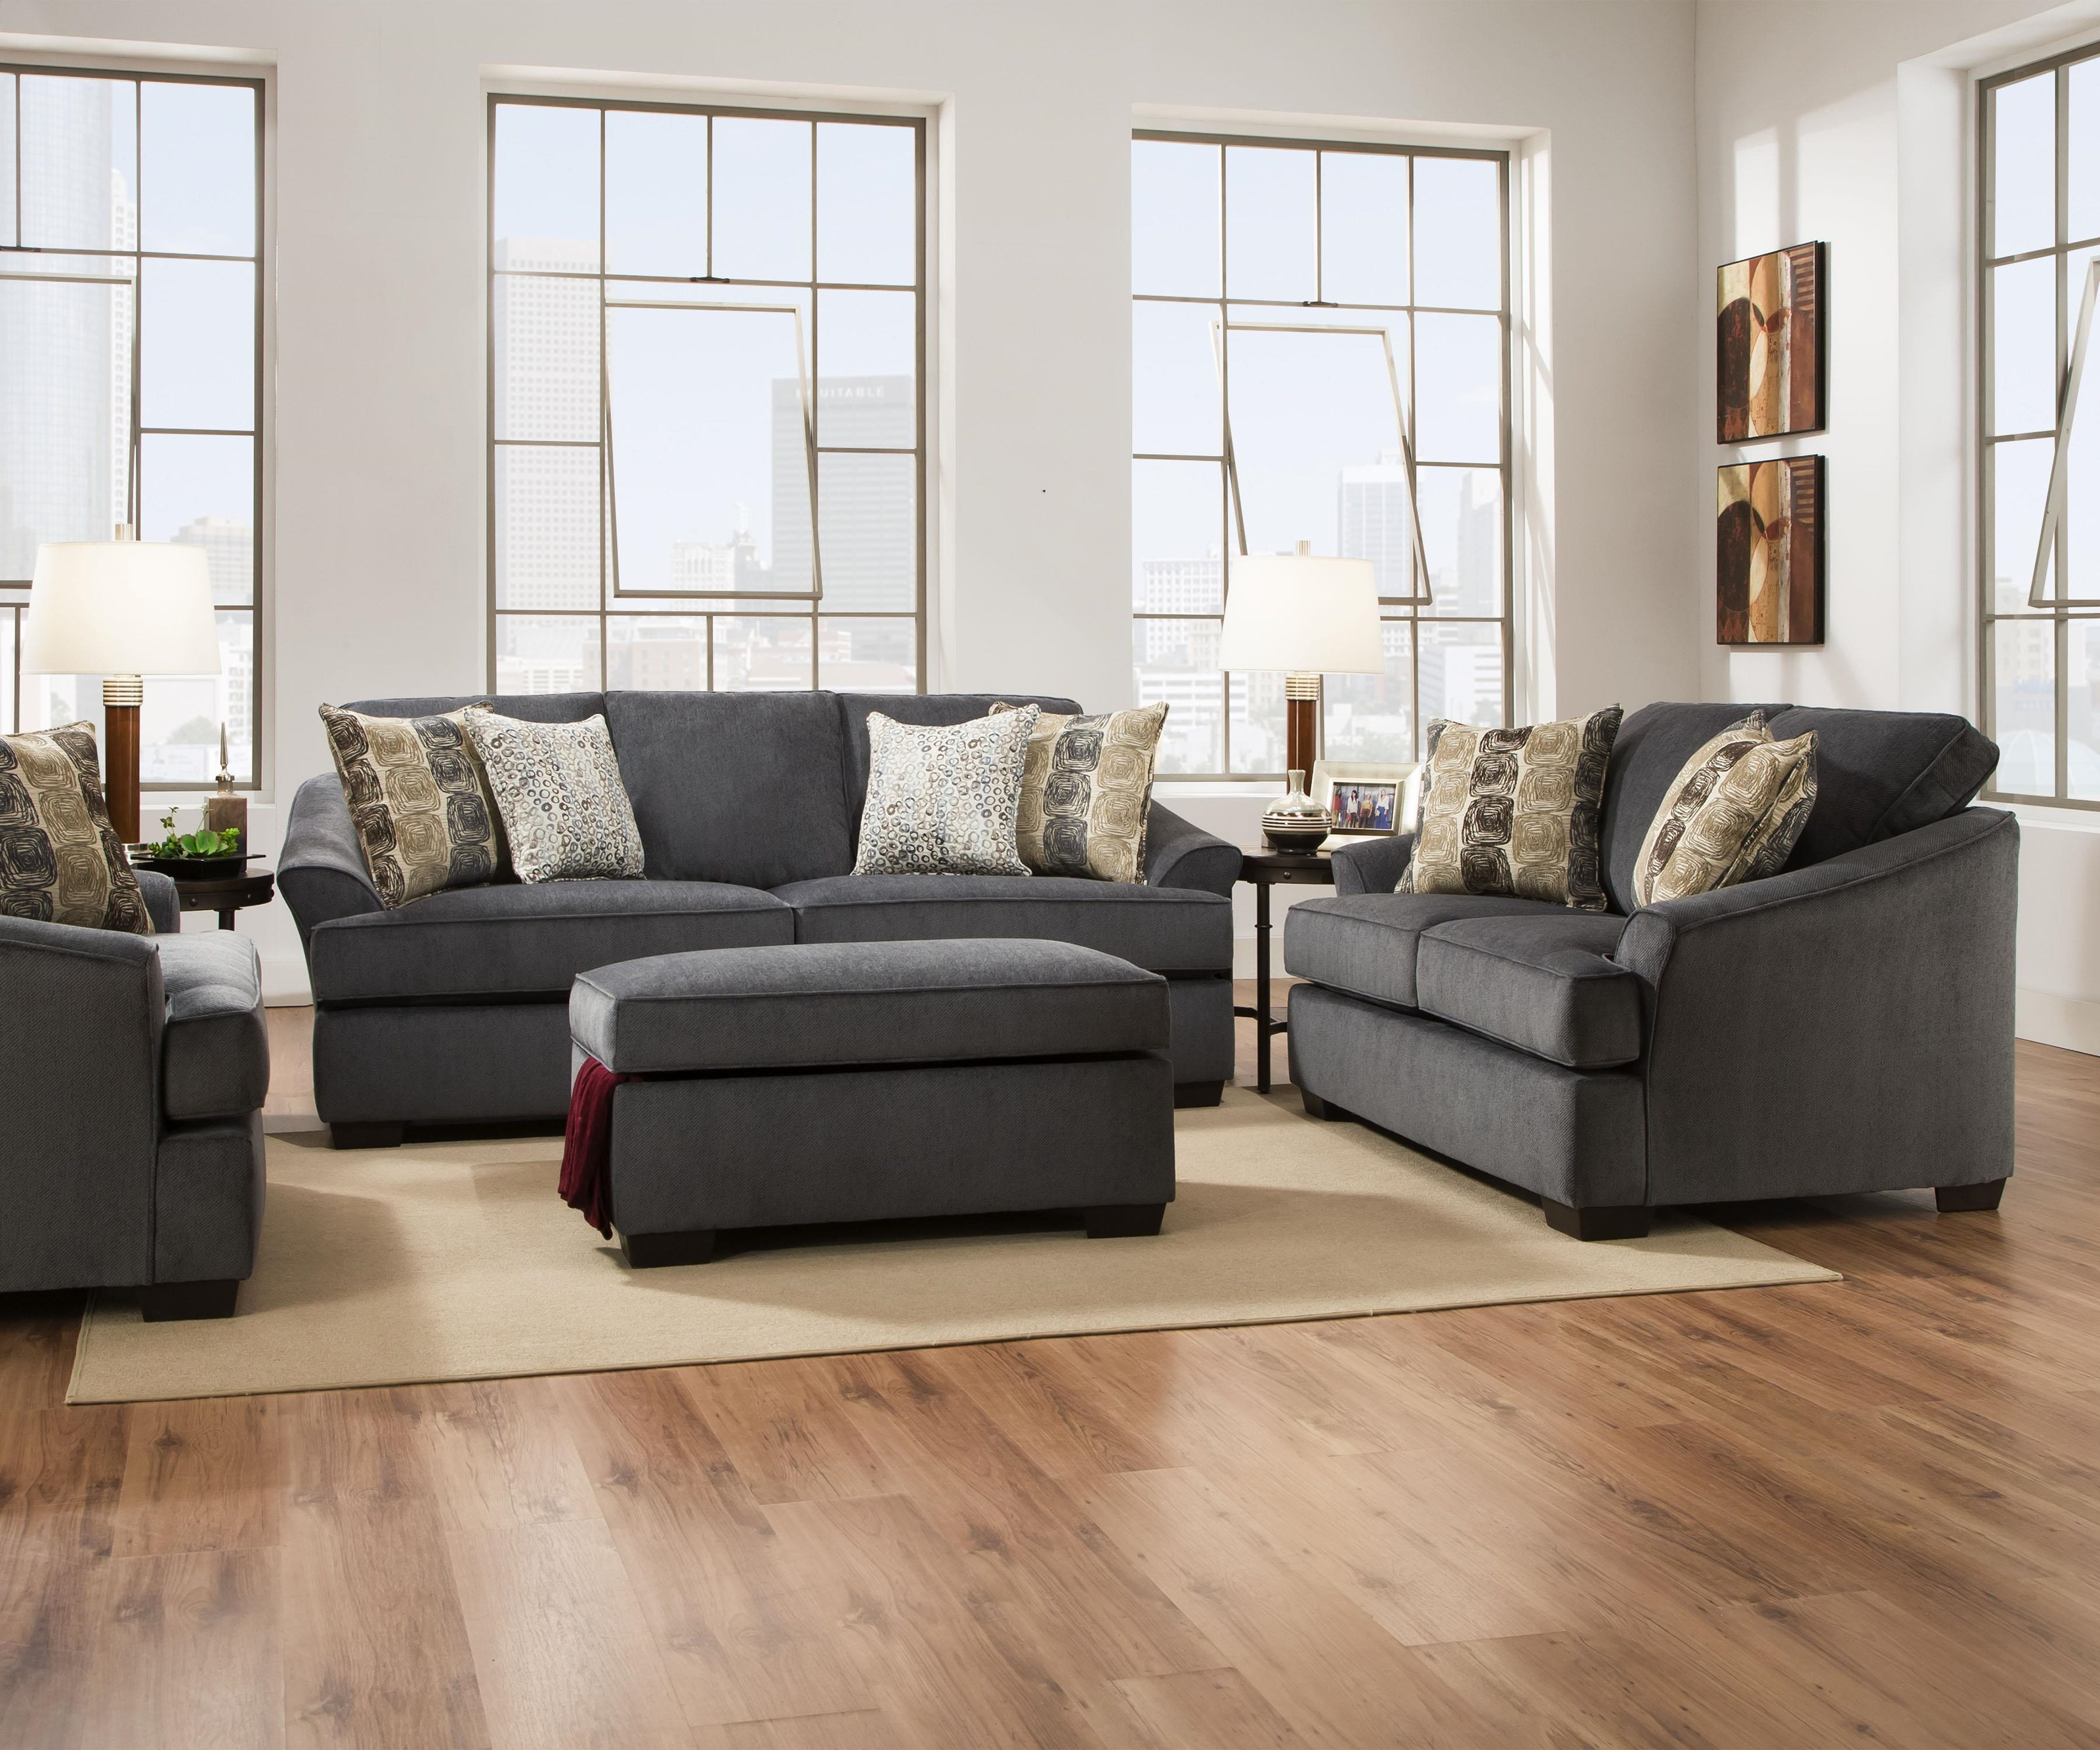 Simmons Upholstery 6522 Casual Sofa and Loveseat - Item Number: 6522S+L